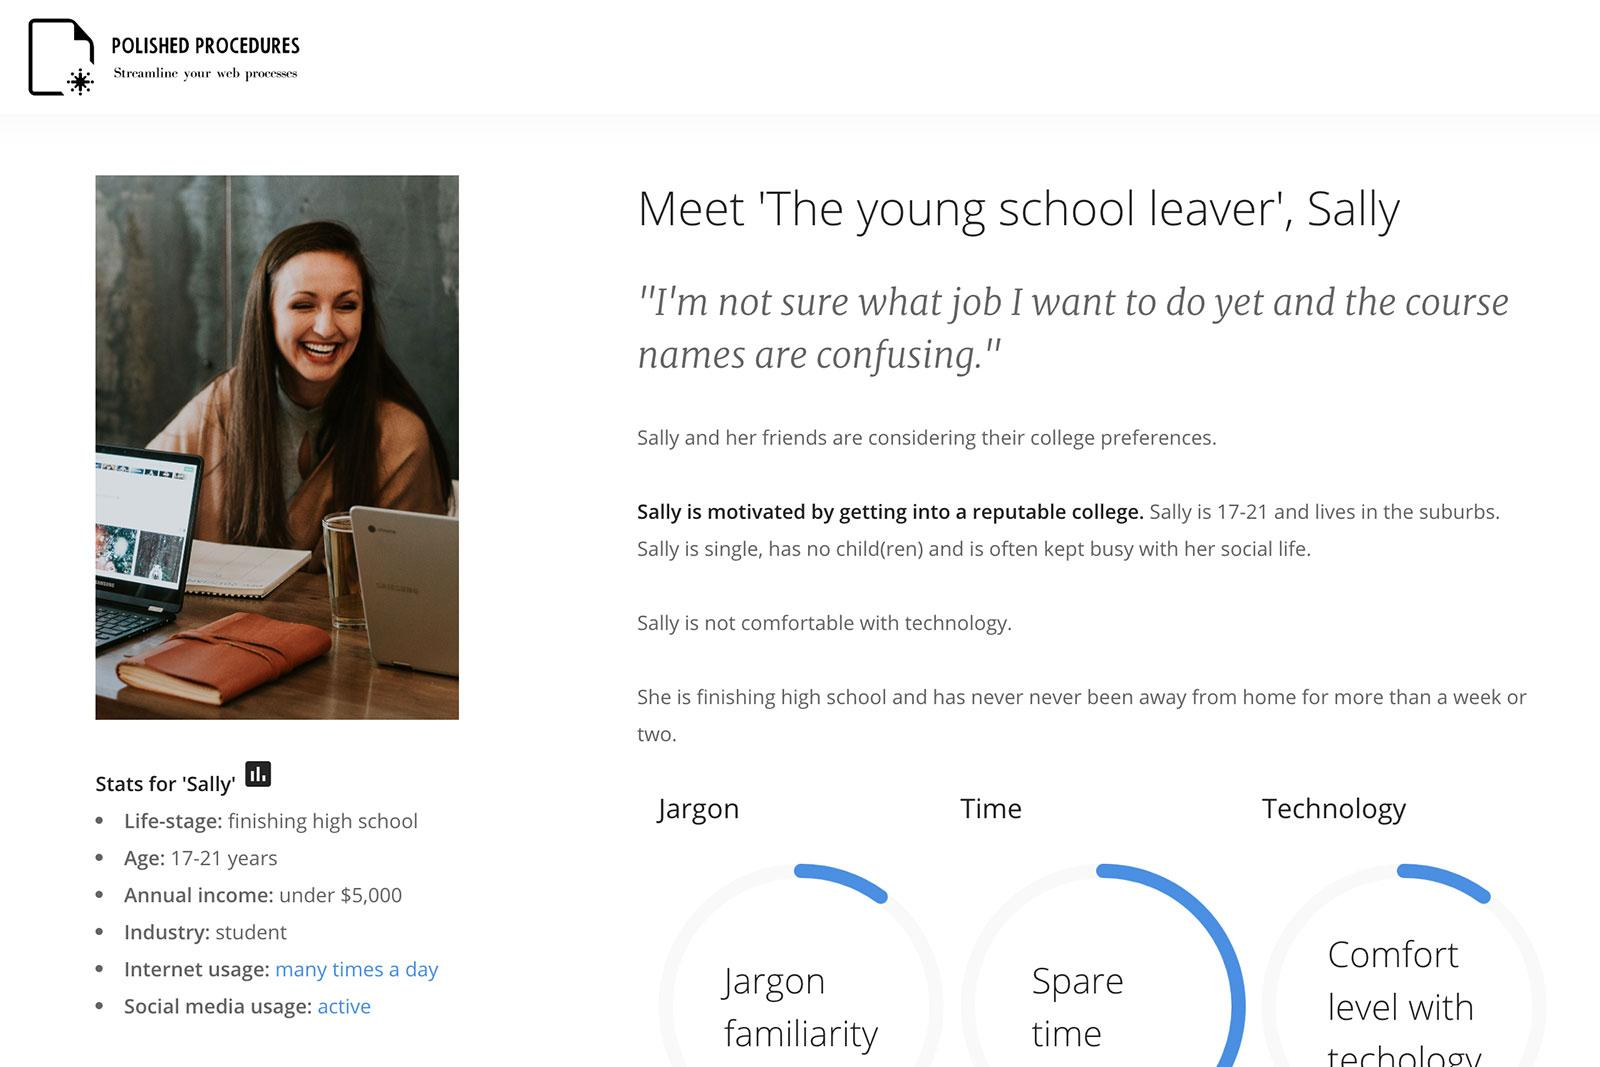 Persona for 'The young school leaver', Sally